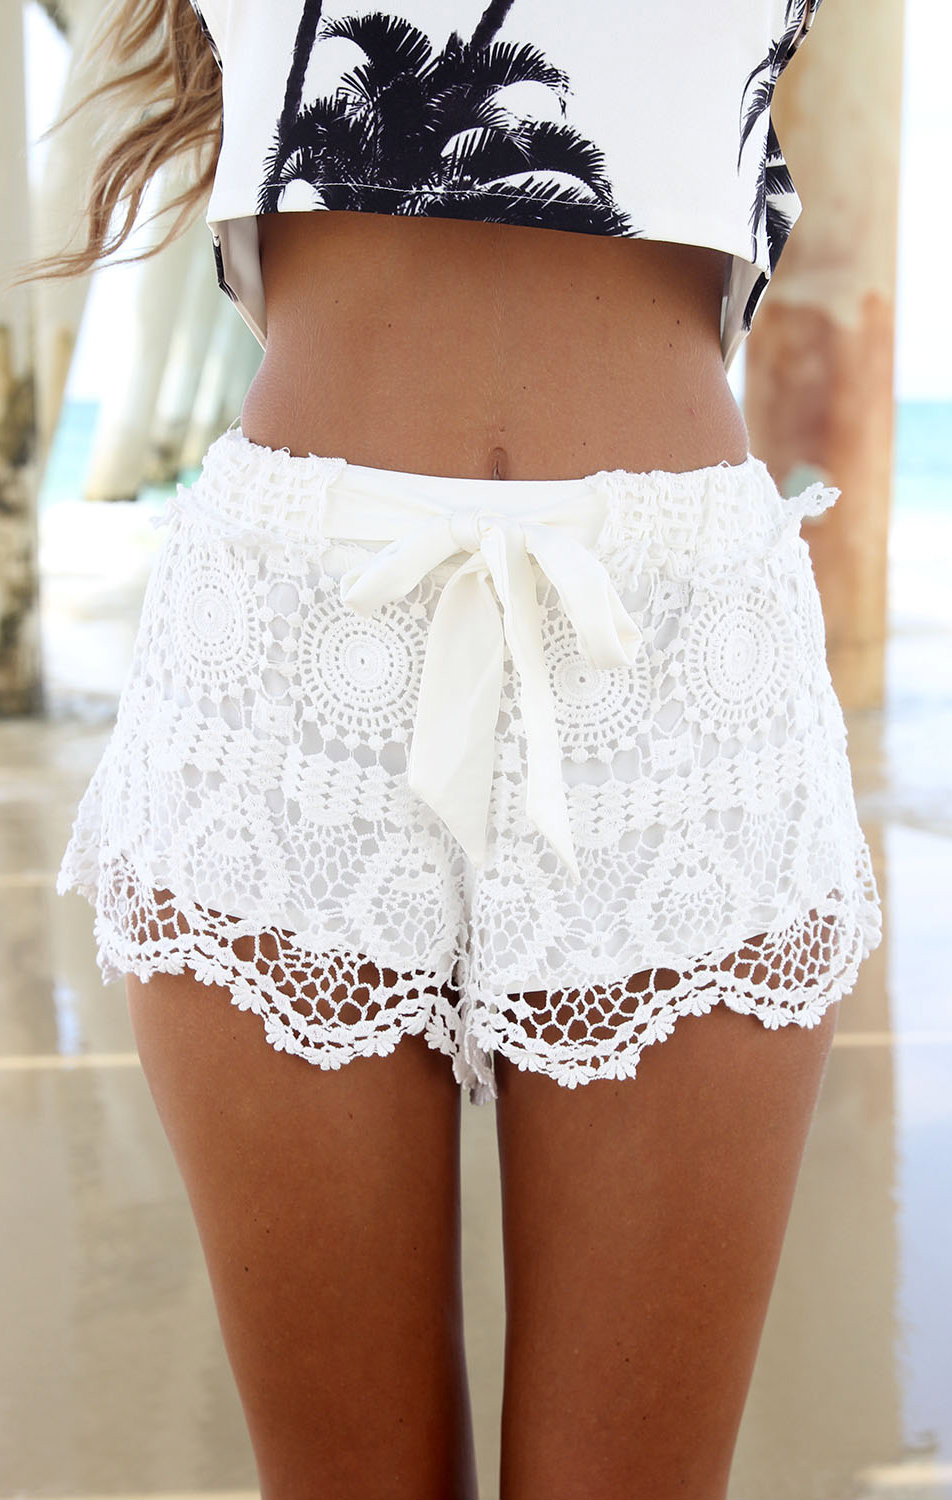 Milla Crochet Shorts – Fashion Sanity